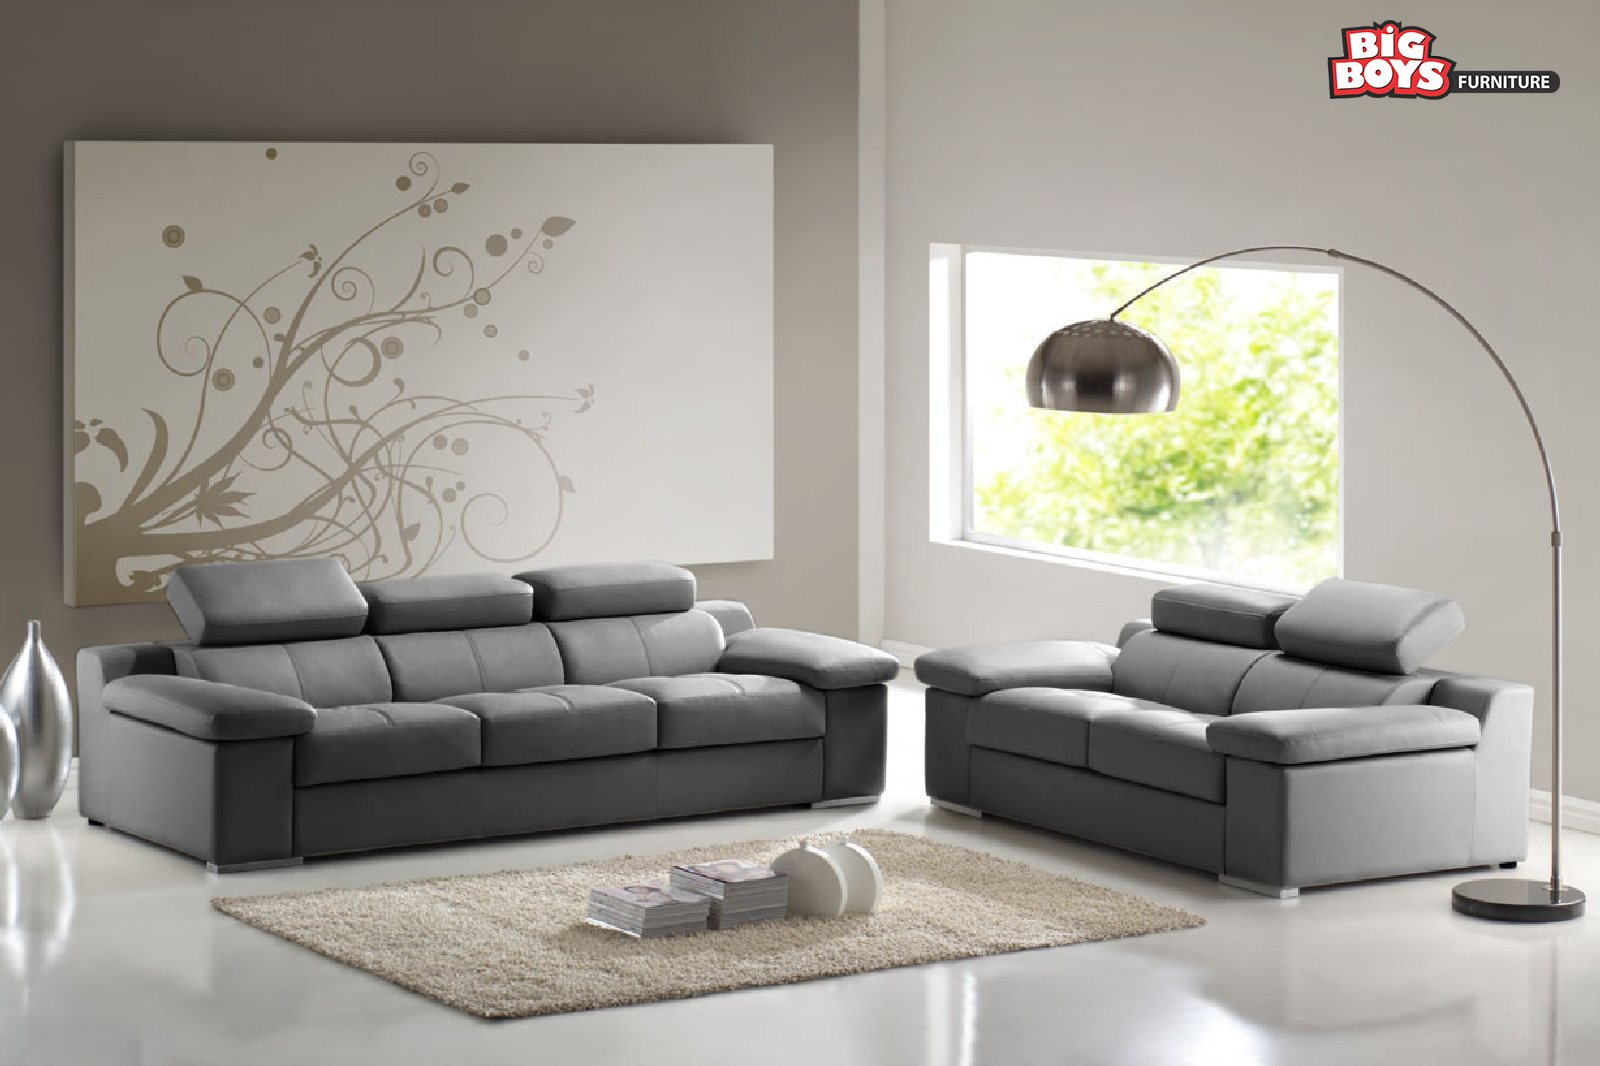 Latest designs of Sofa Sets available at Big Boys Furniture